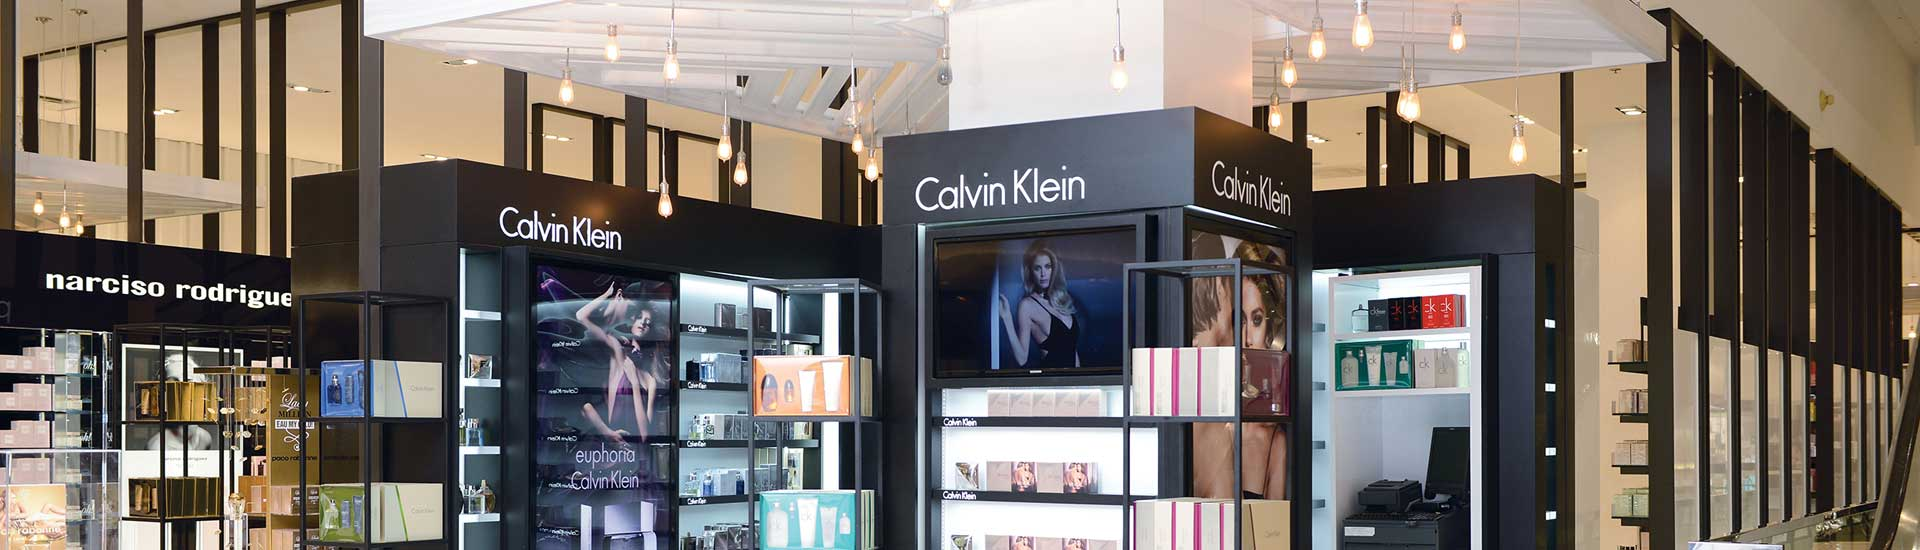 05-Calvin-Klein-Array-Marketing-Slider